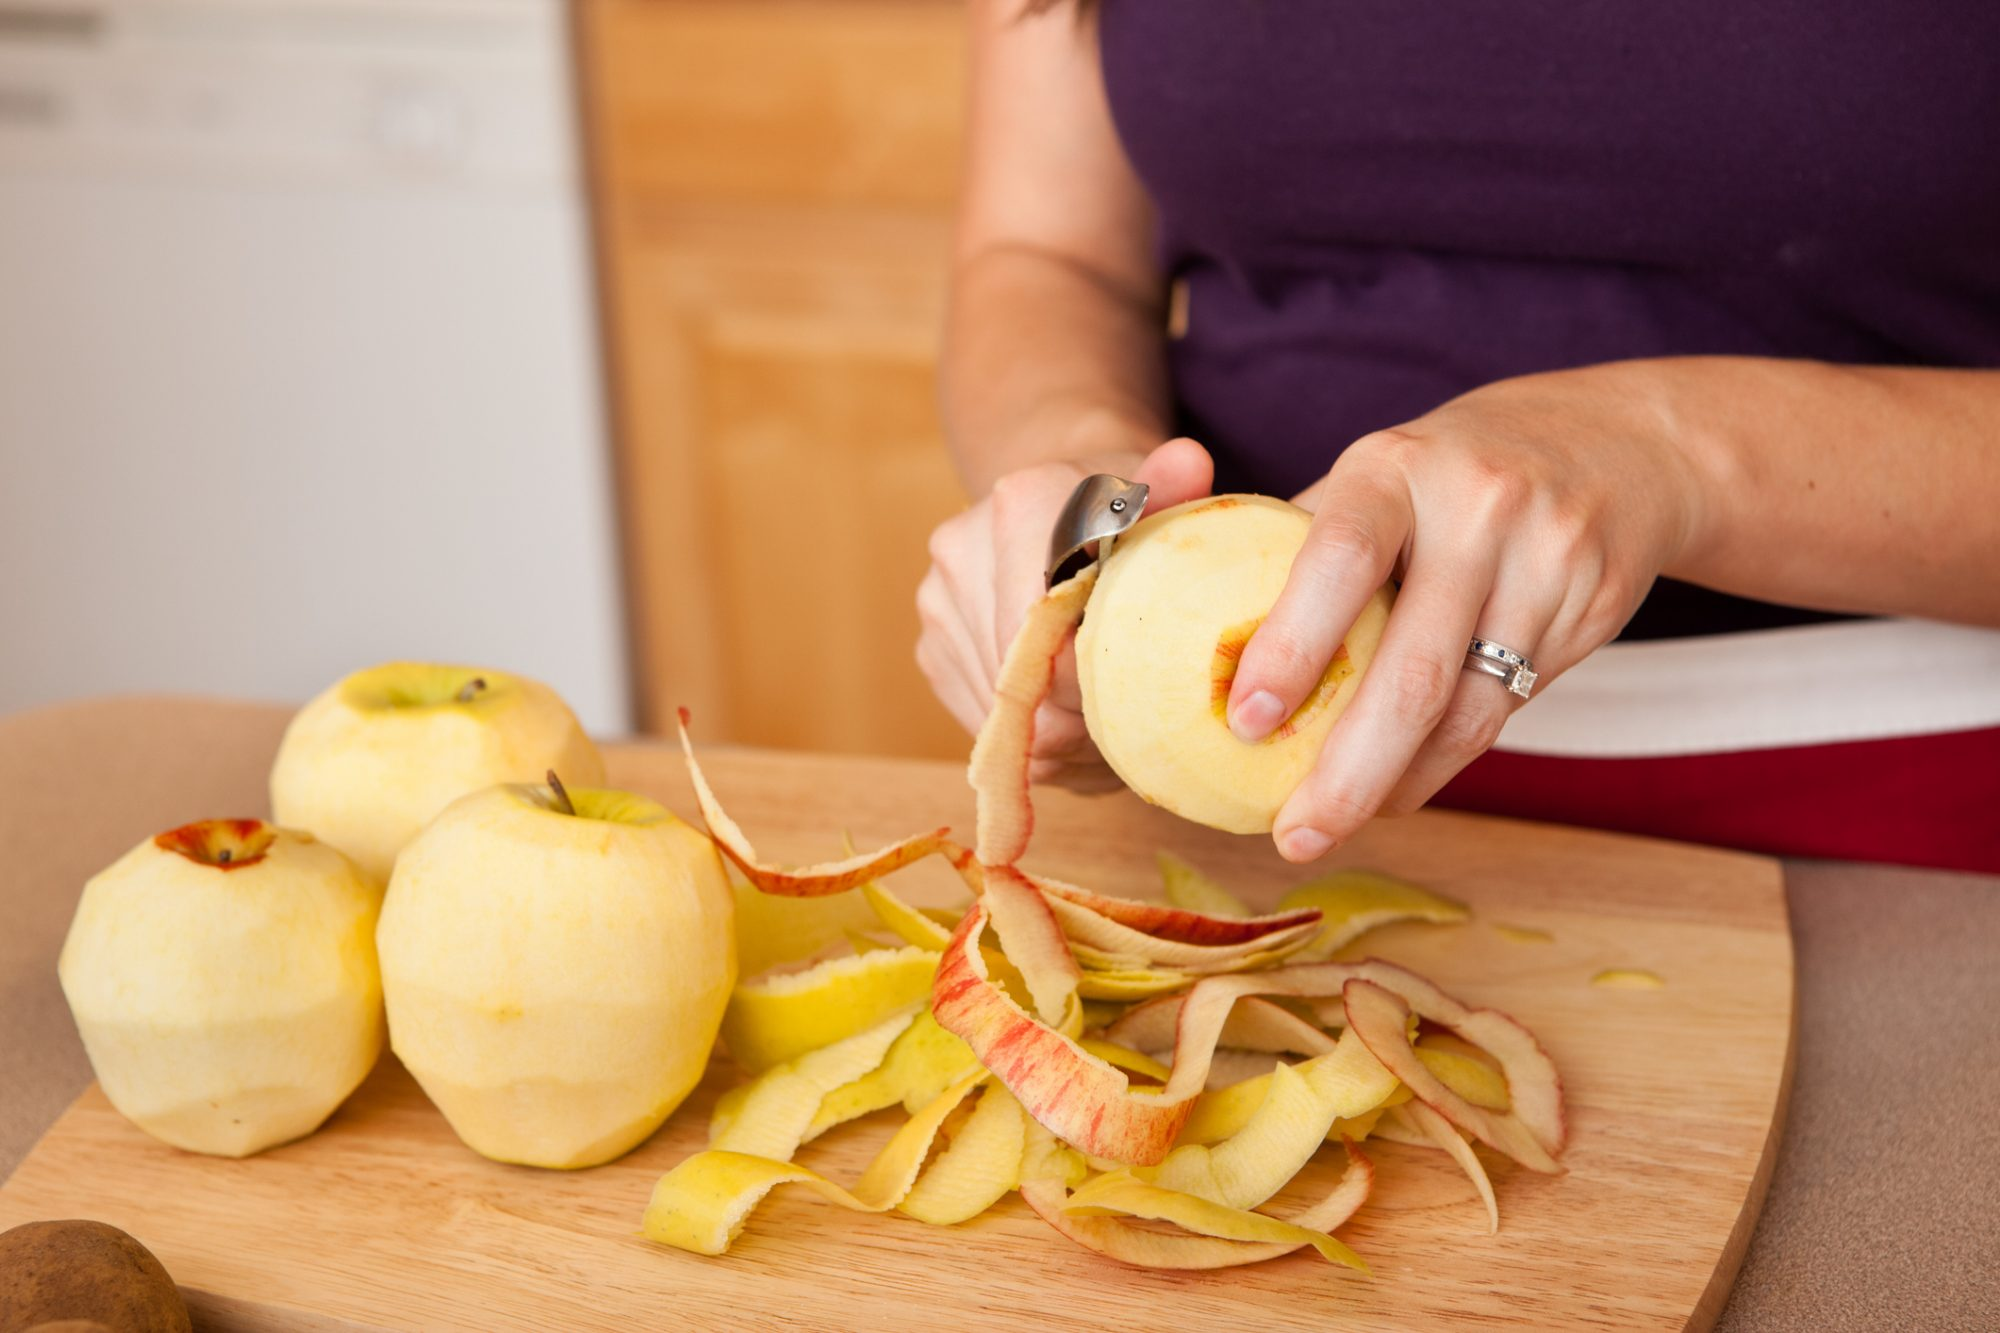 How to Peel Apples for Cooking and Baking